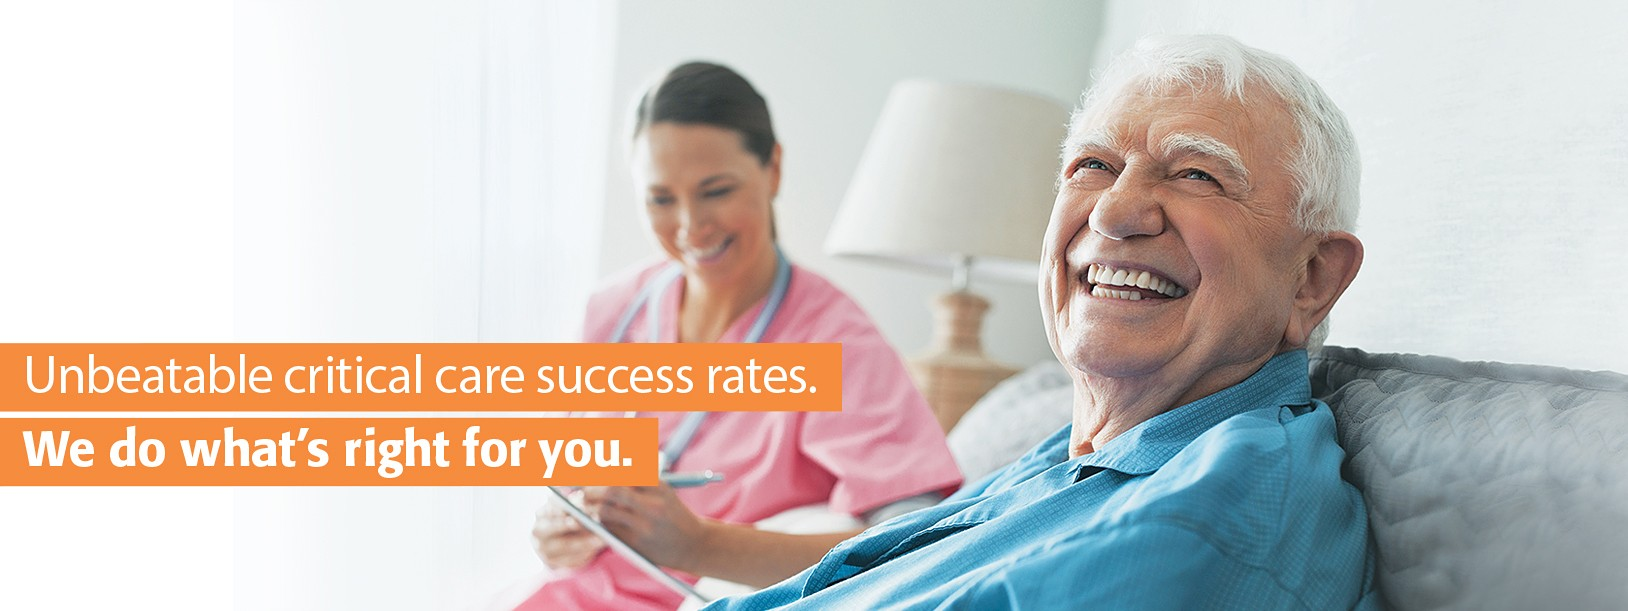 Unbeatable critical care success rates. We do what's right for you.